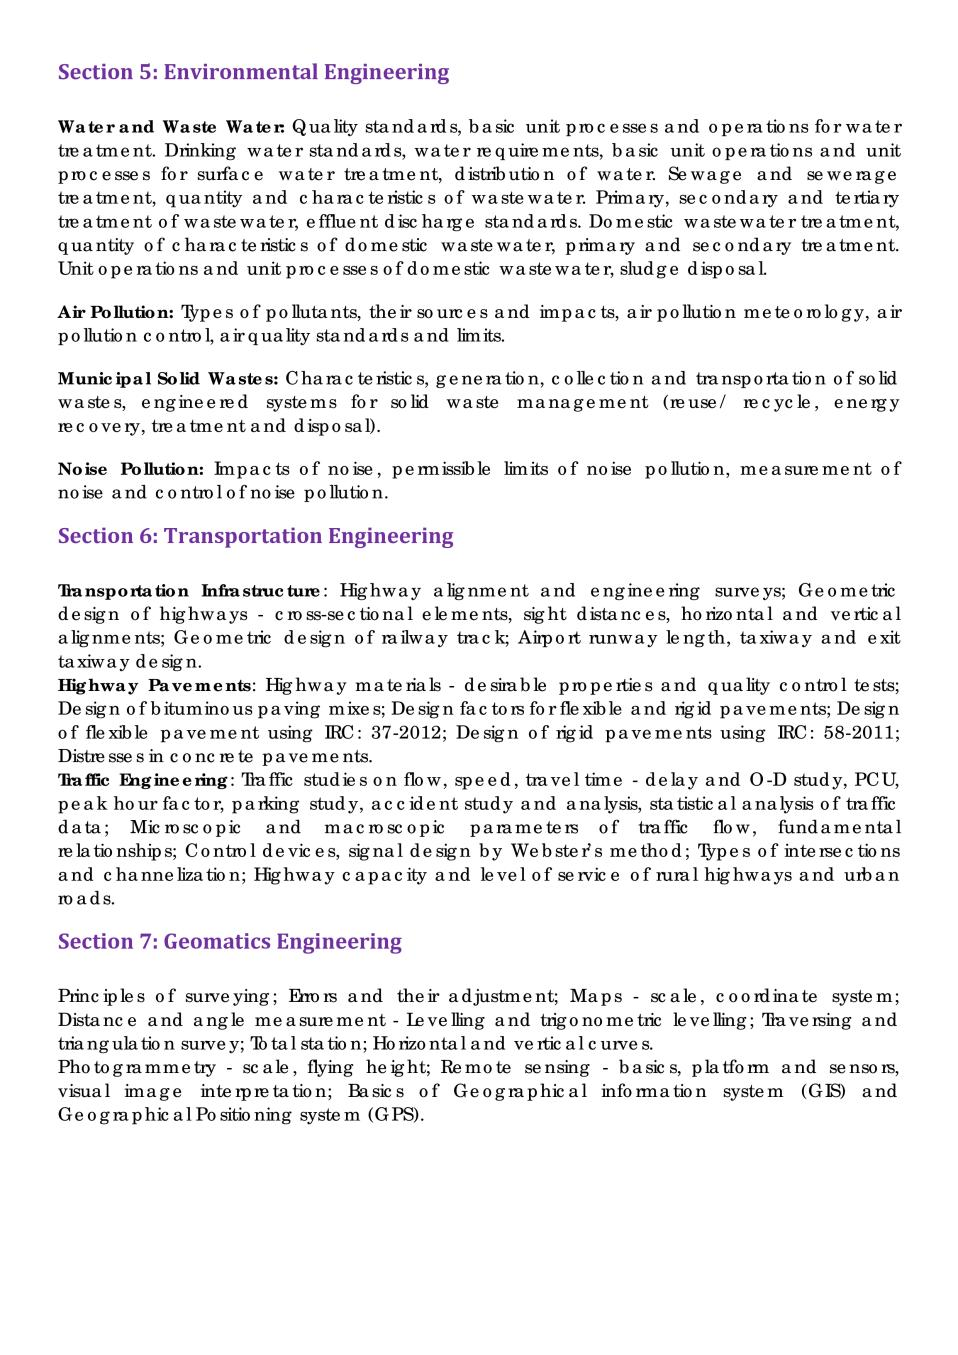 GATE Syllabus for Civil Engineering (CE) - GATE Syllabus | AglaSem